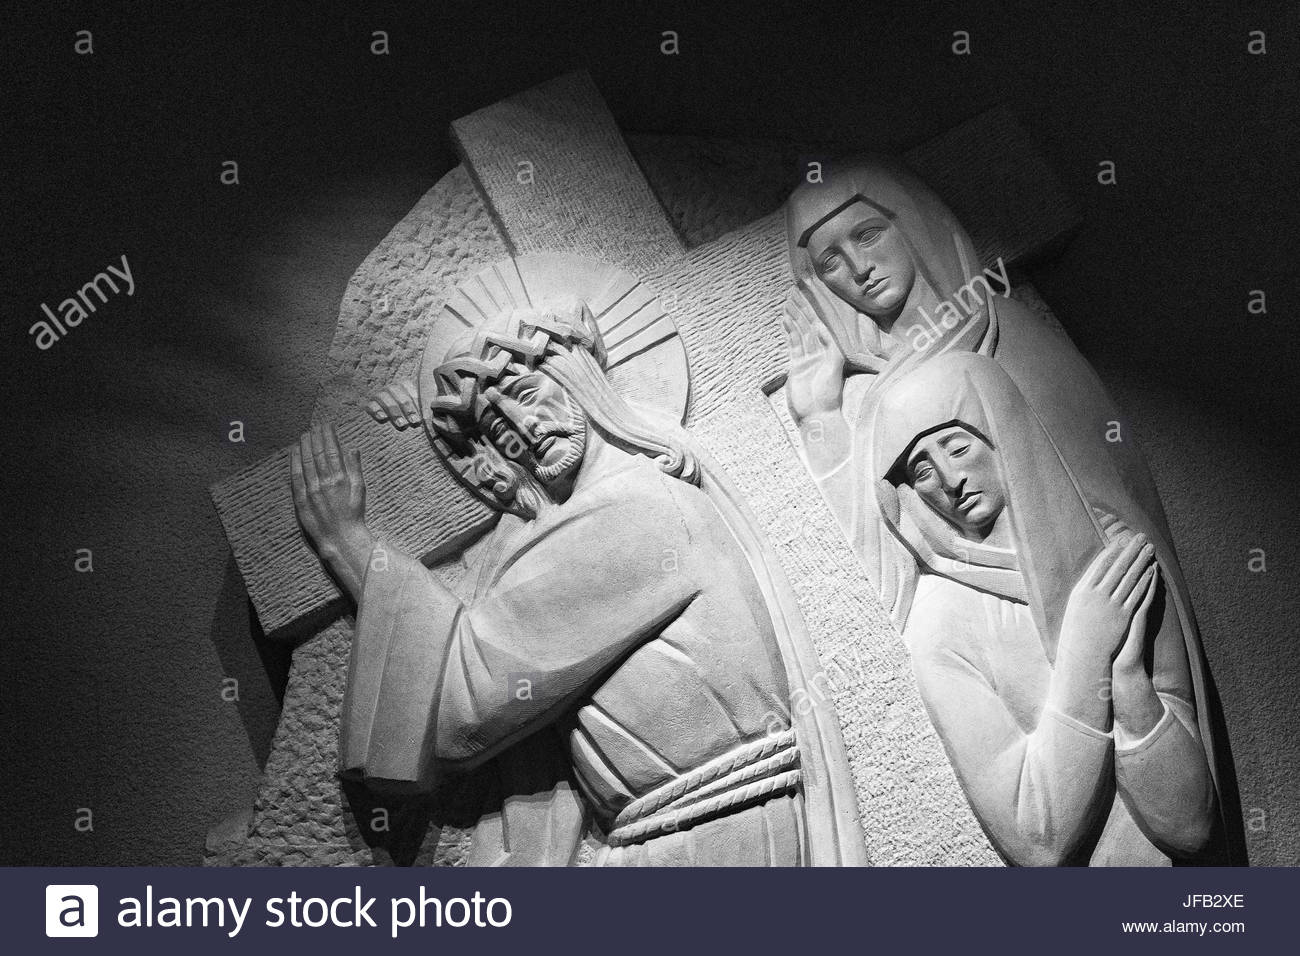 Christian sculptures of Jesus' Passion in the Saint Joseph Oratory basilica church. Natural light. - Stock Image